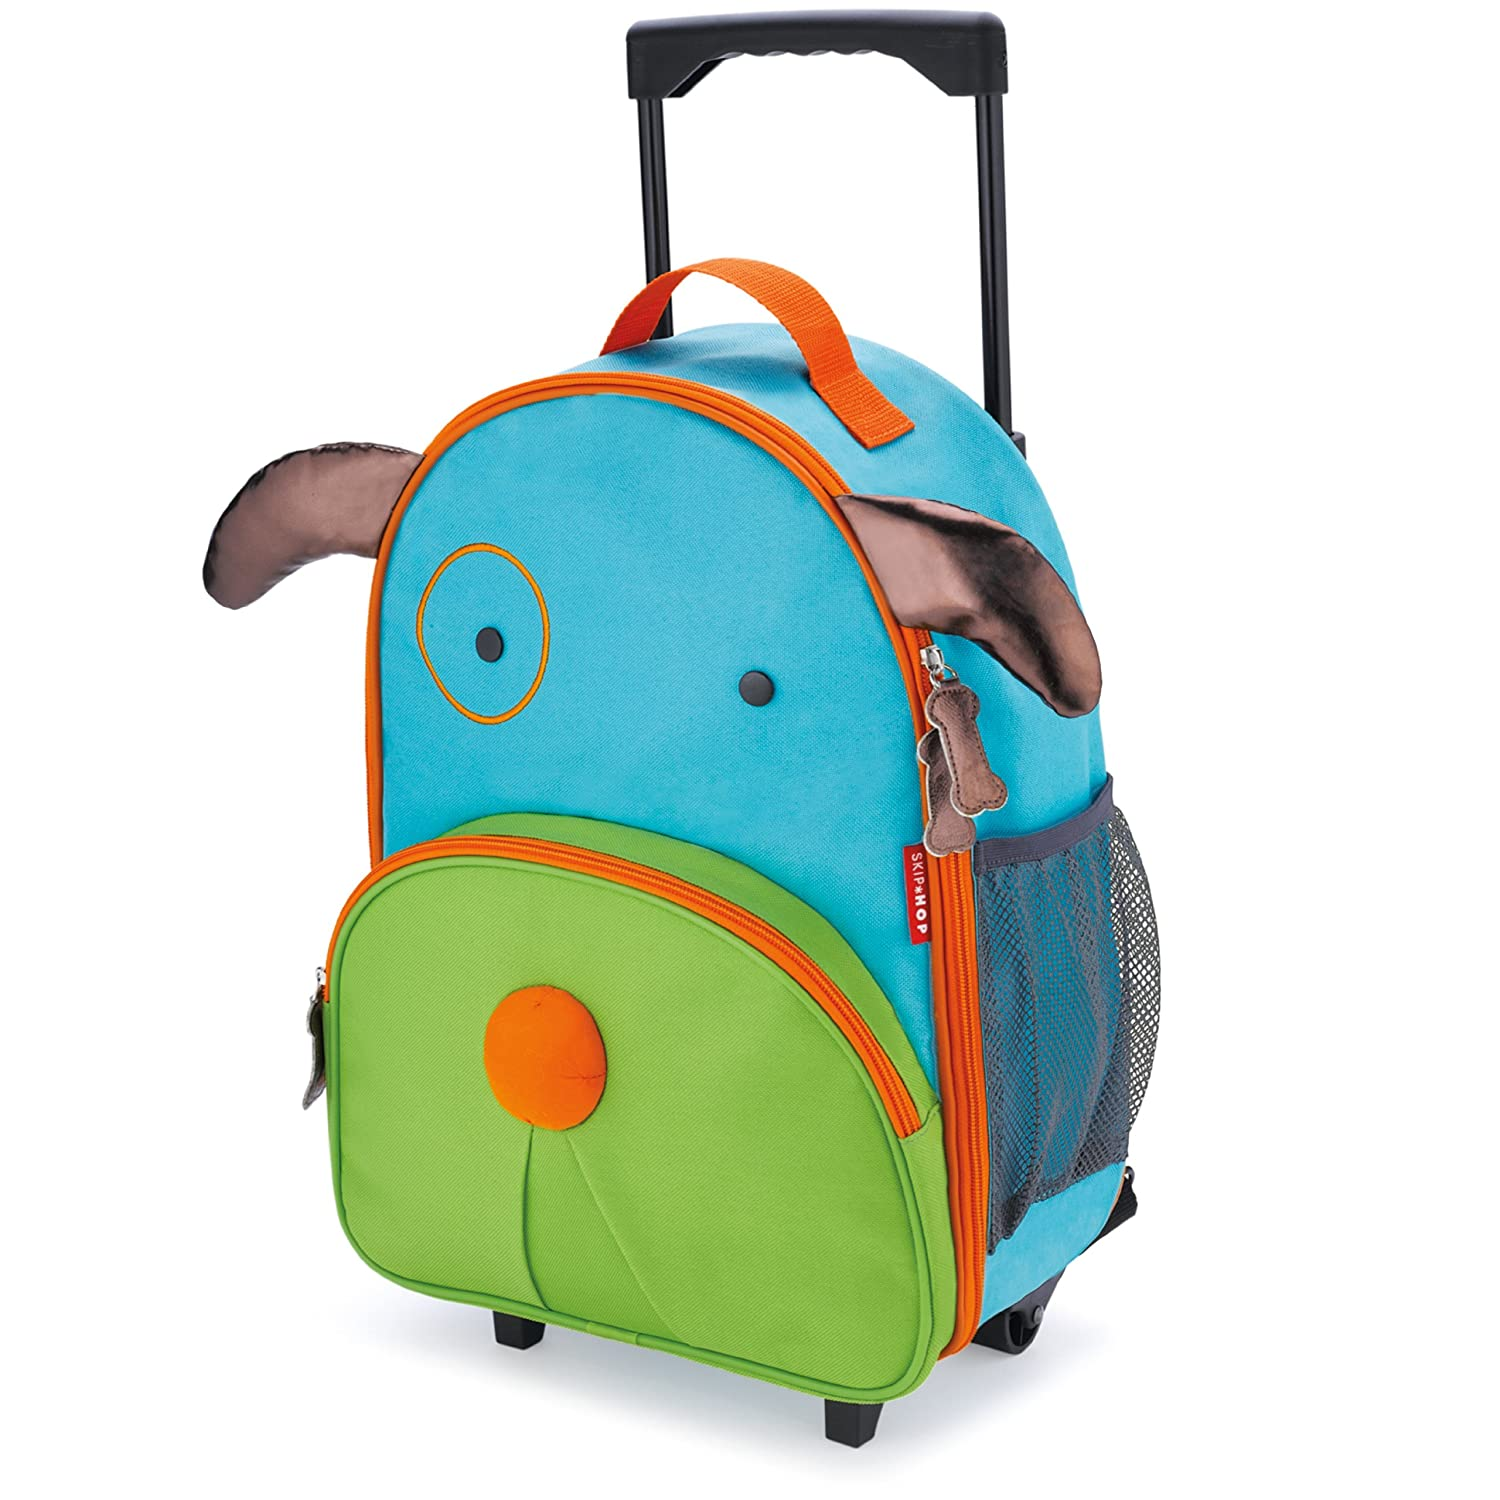 Top 10 Best Kids Carry on Luggage (2020 Updated) 1